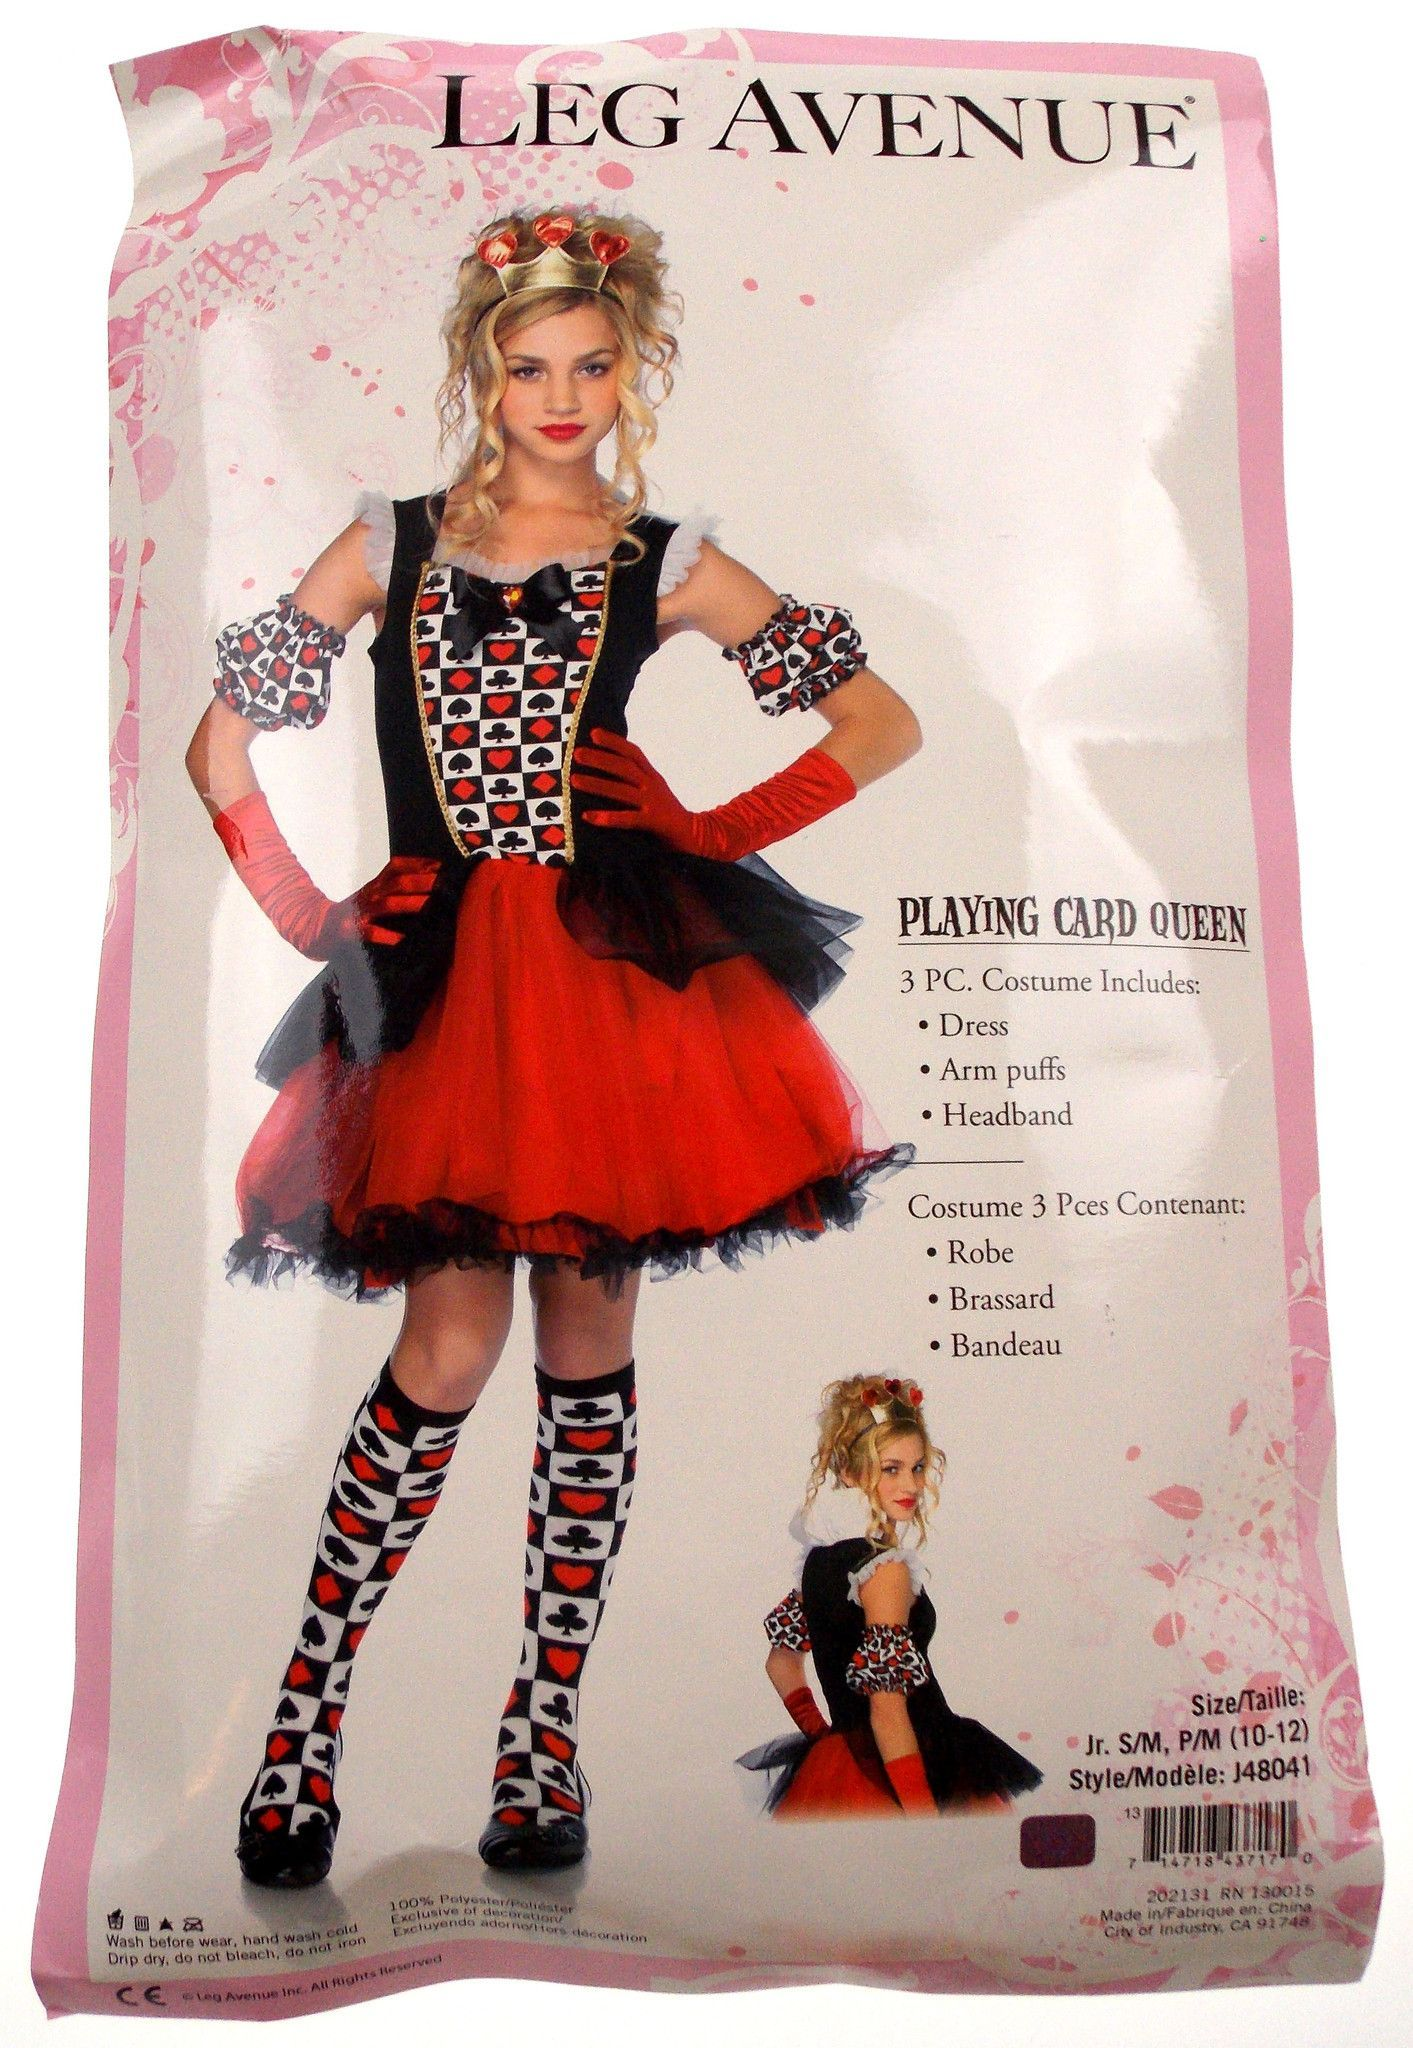 leg avenue playing card queen girls halloween costume size jr sm new in package leg avenue costumes have the following measurements junior sm age 11